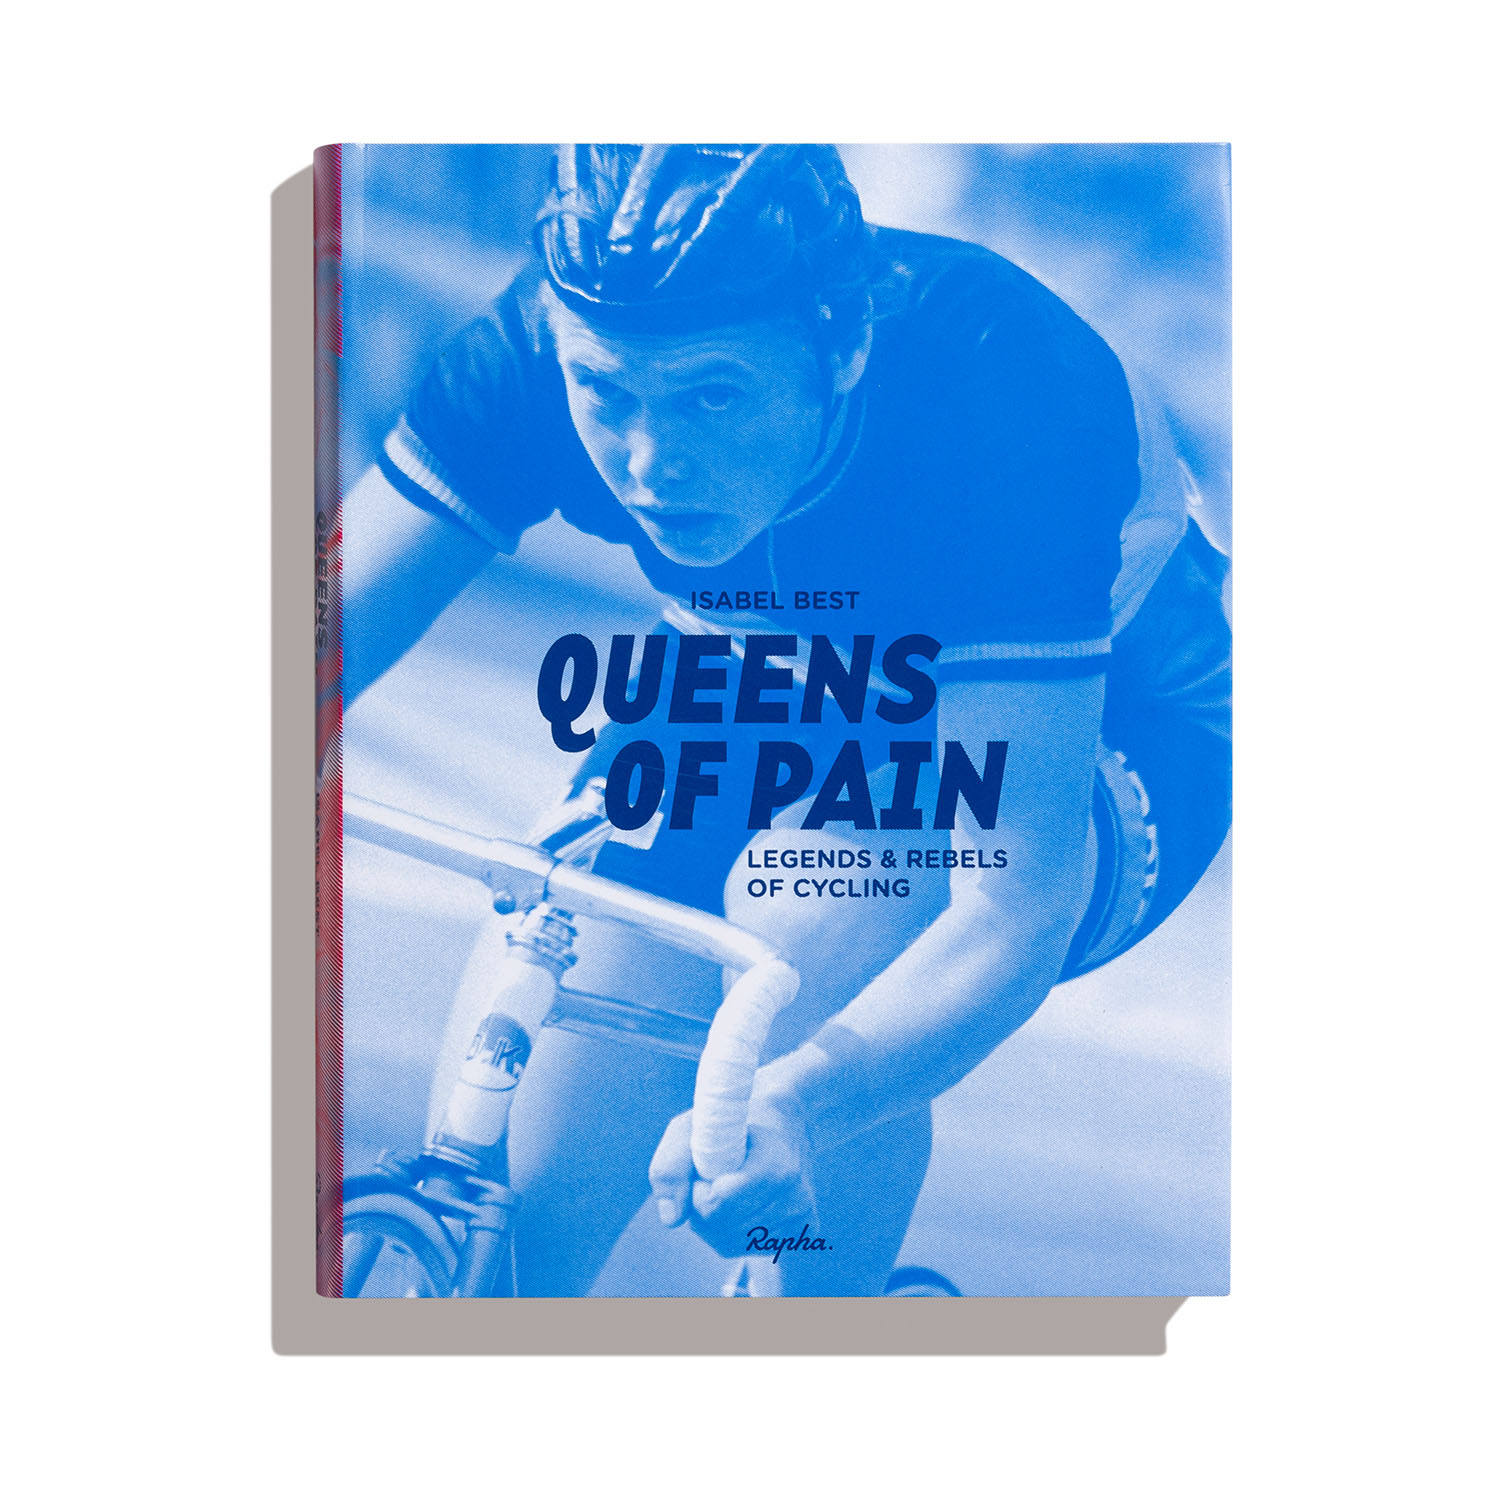 Book-Queens-of-Pain-BlueCover_1.jpg